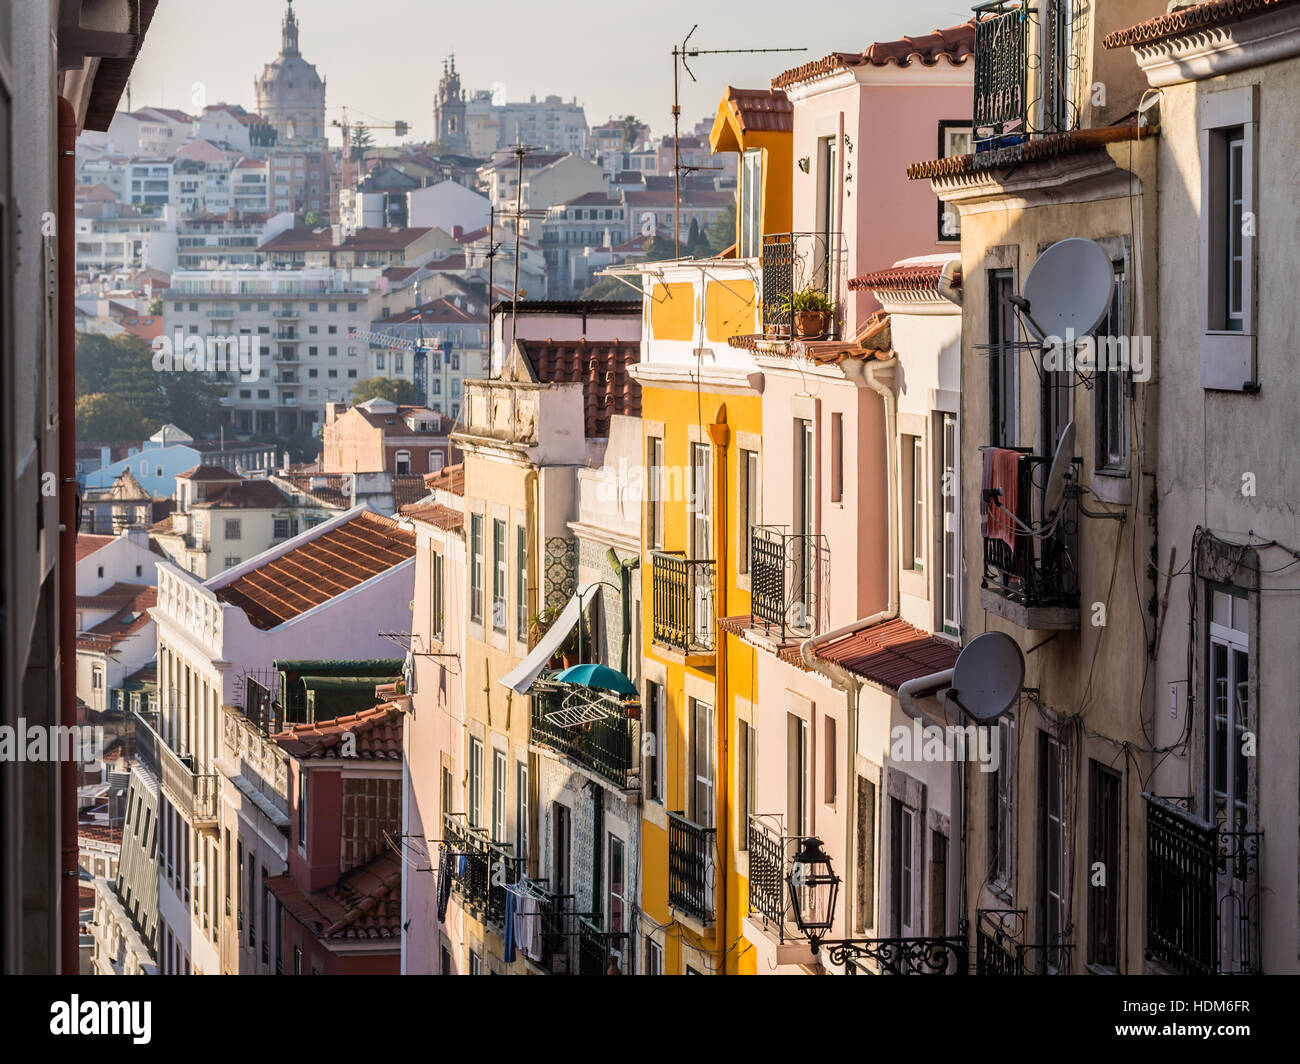 Architecture in the Old Town of Lisbon, Portugal. - Stock Image